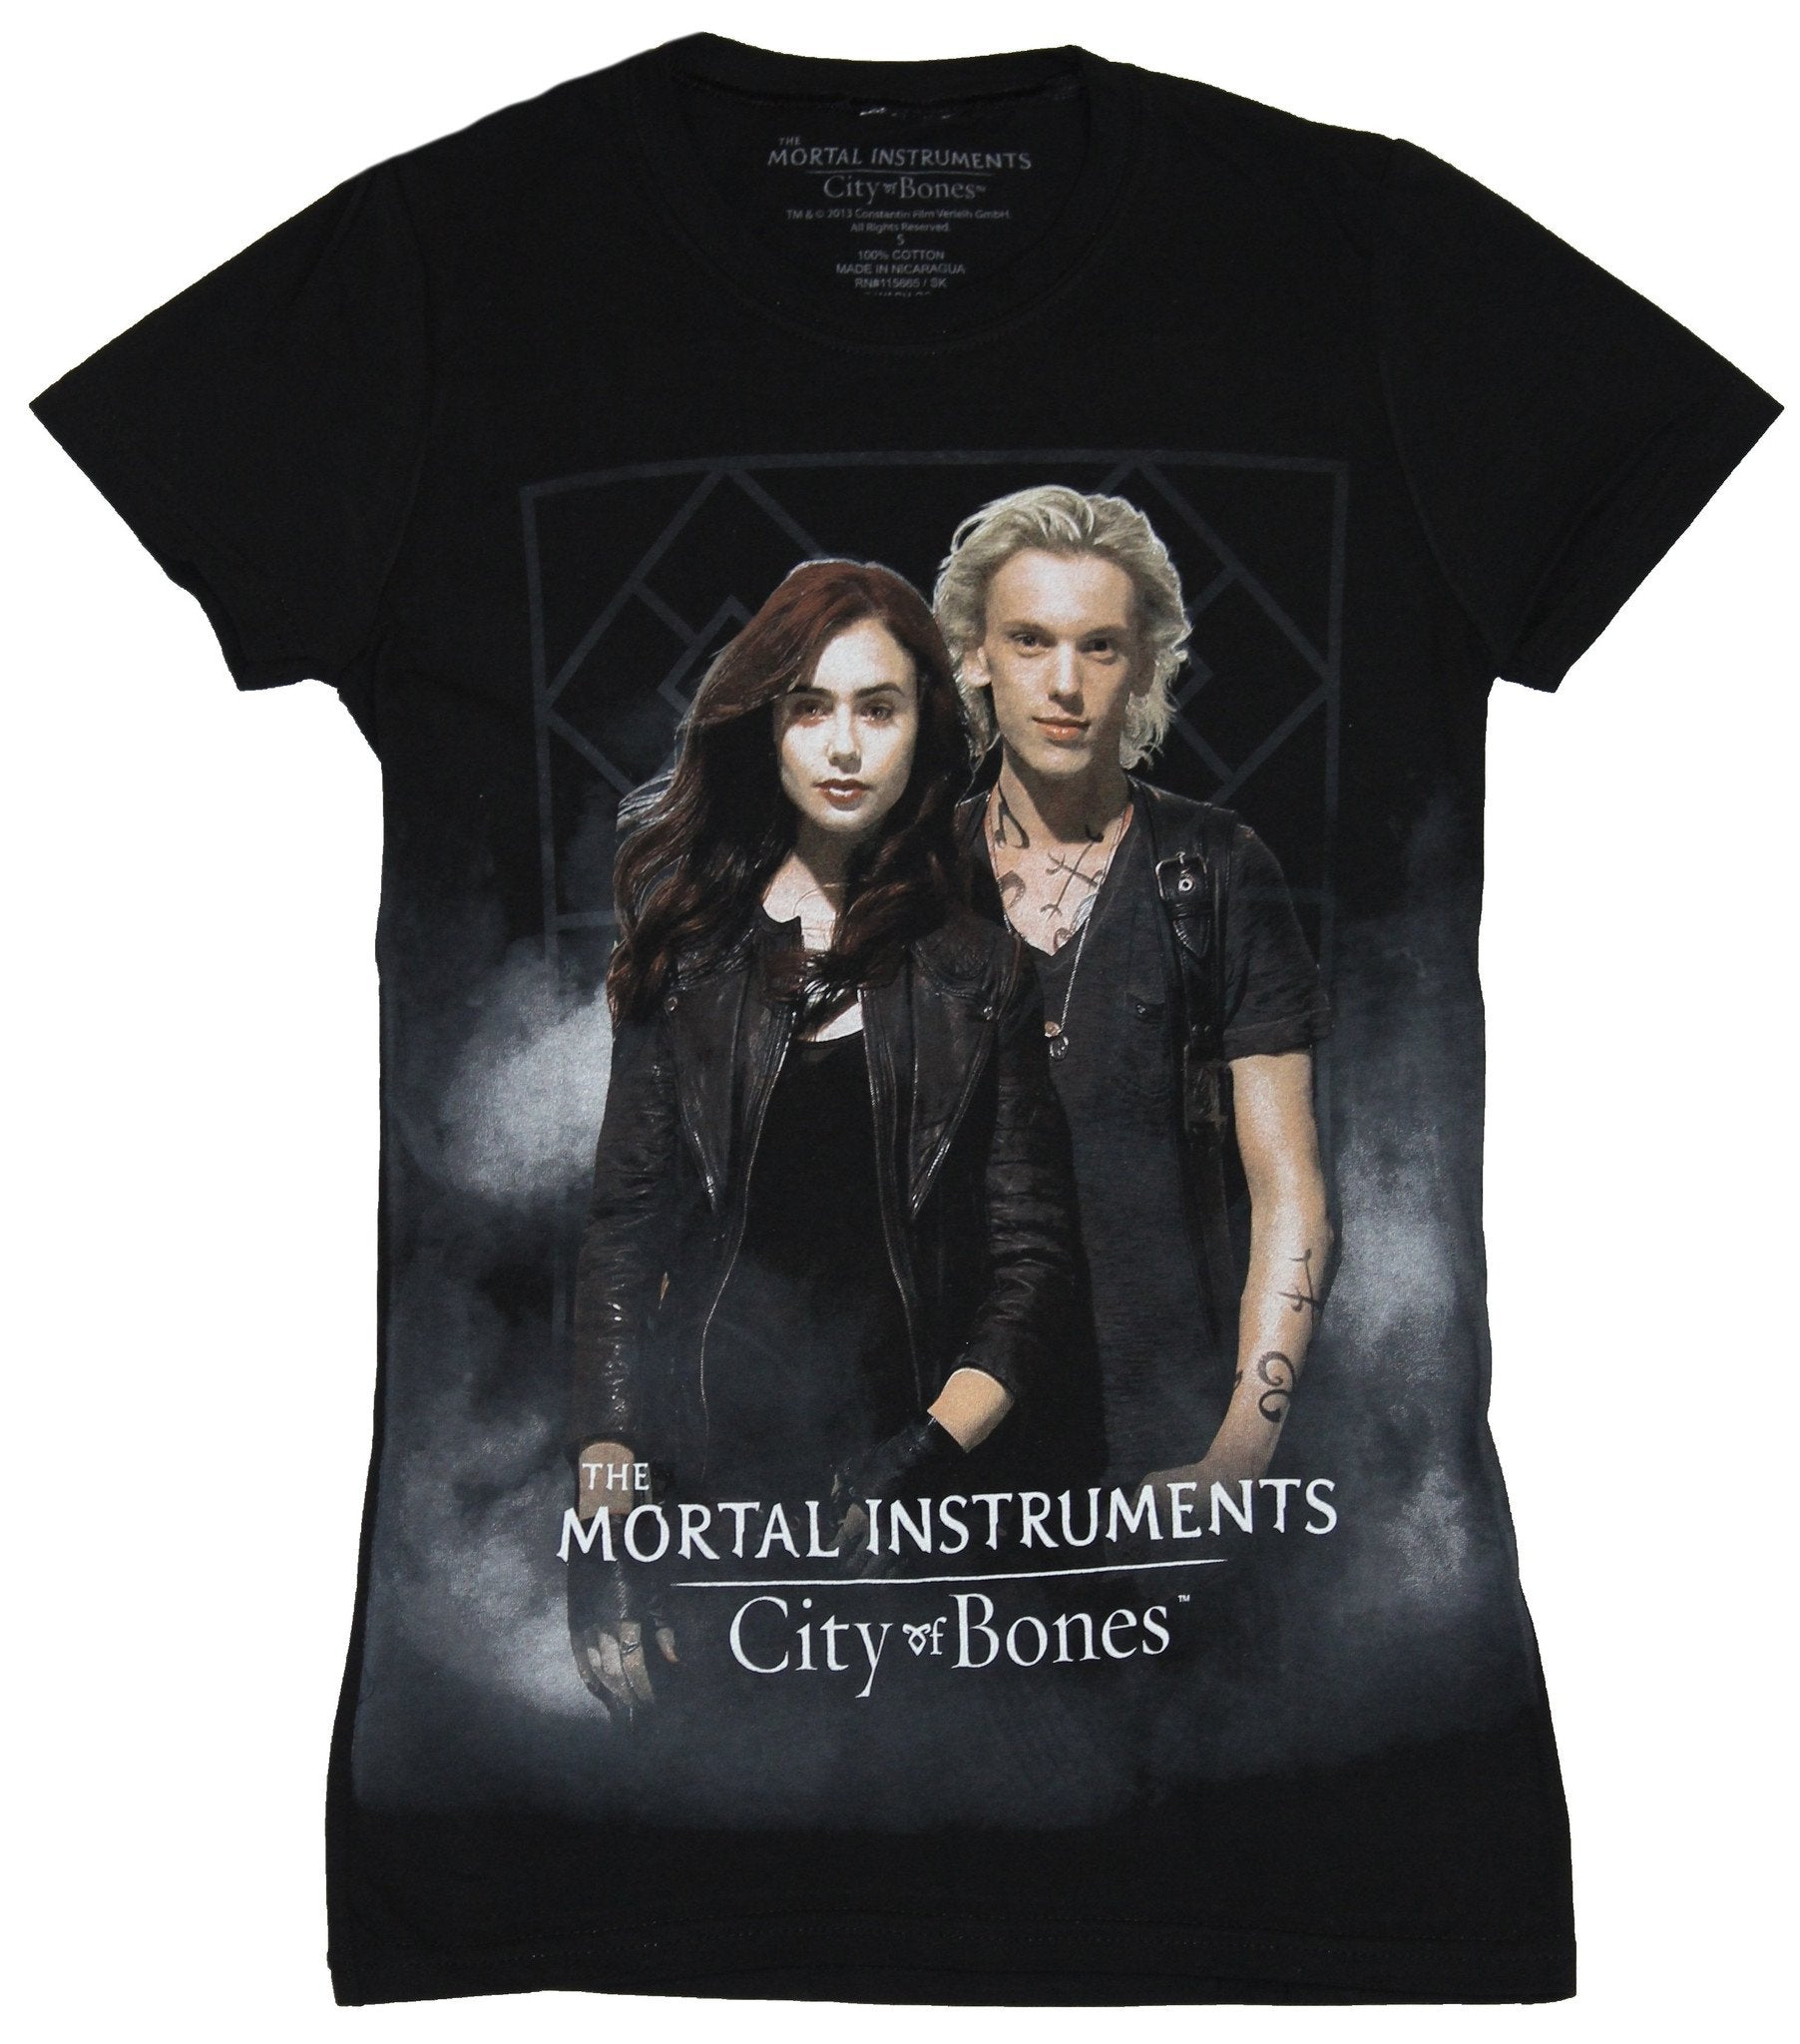 Mortal Instruments Girls Juniors T-Shirt - Guy and Girl in Cloudy Background